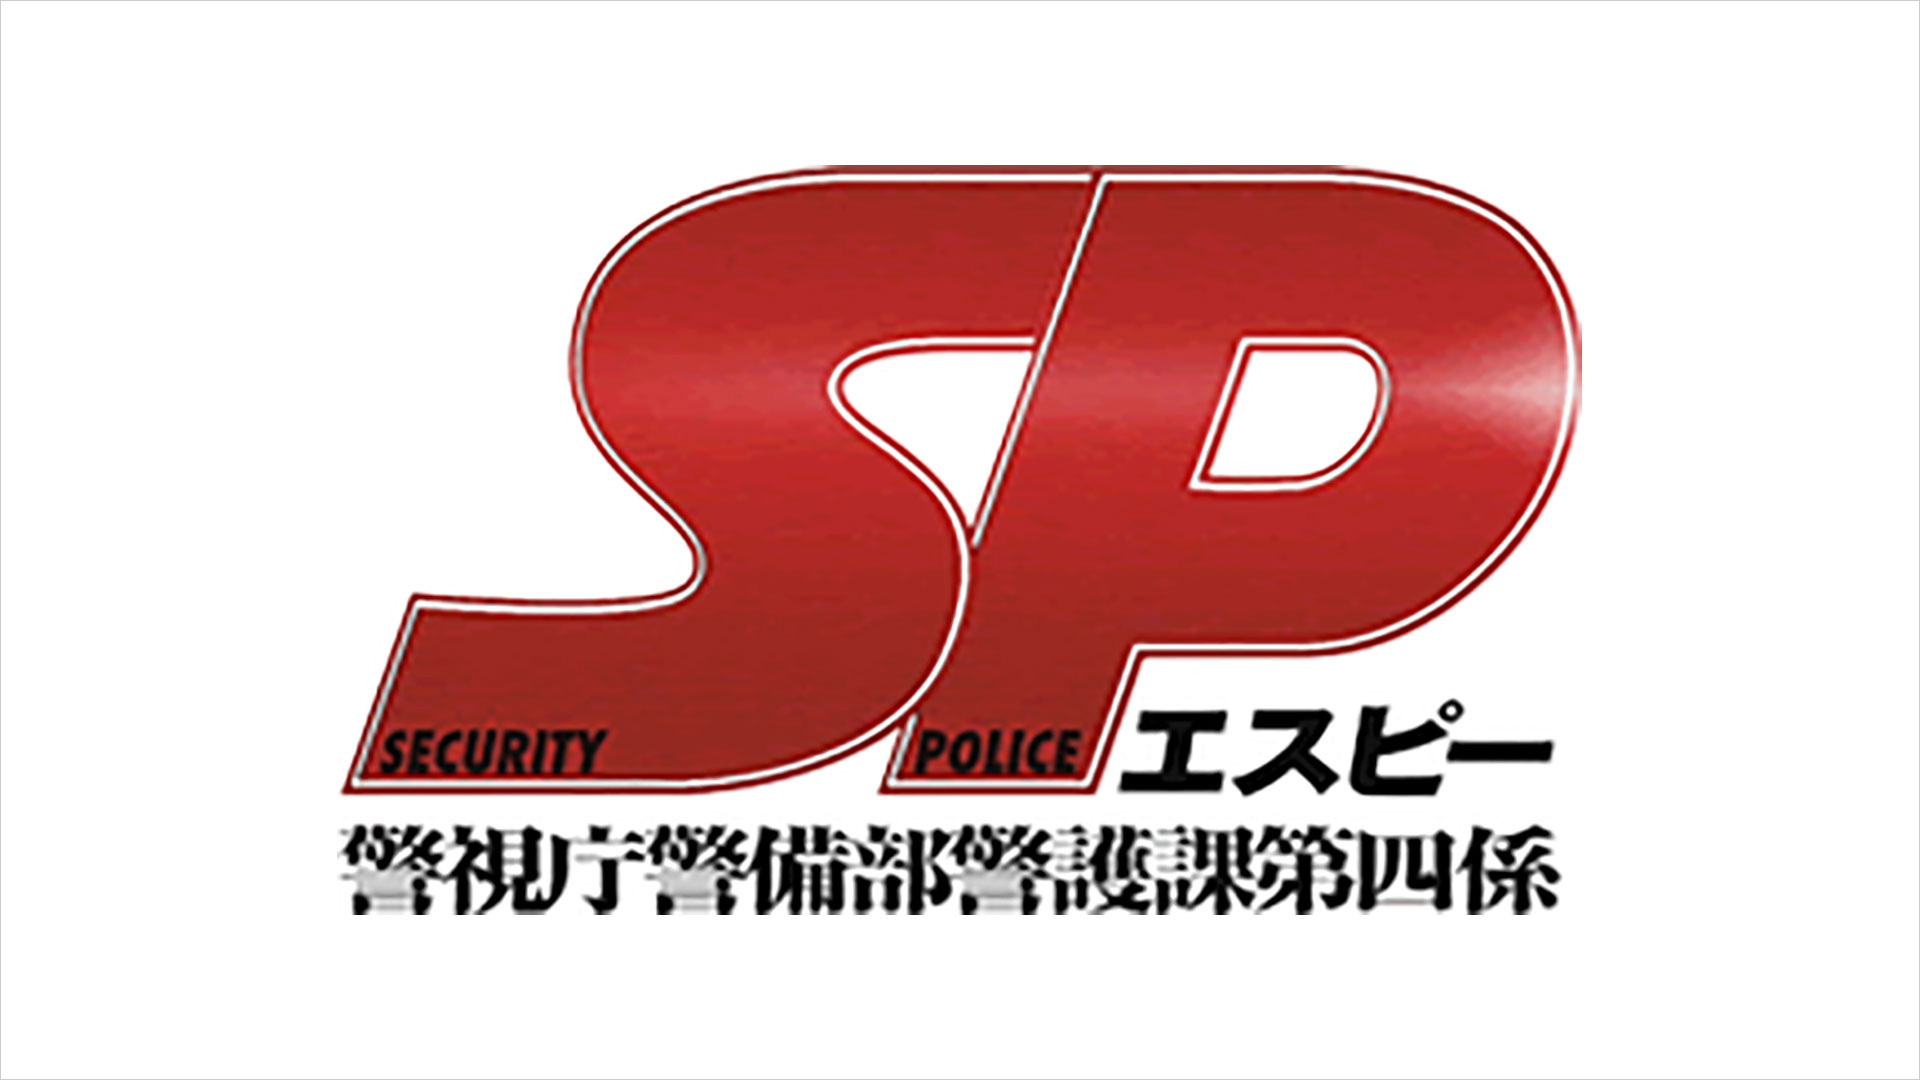 SP -Security Police-